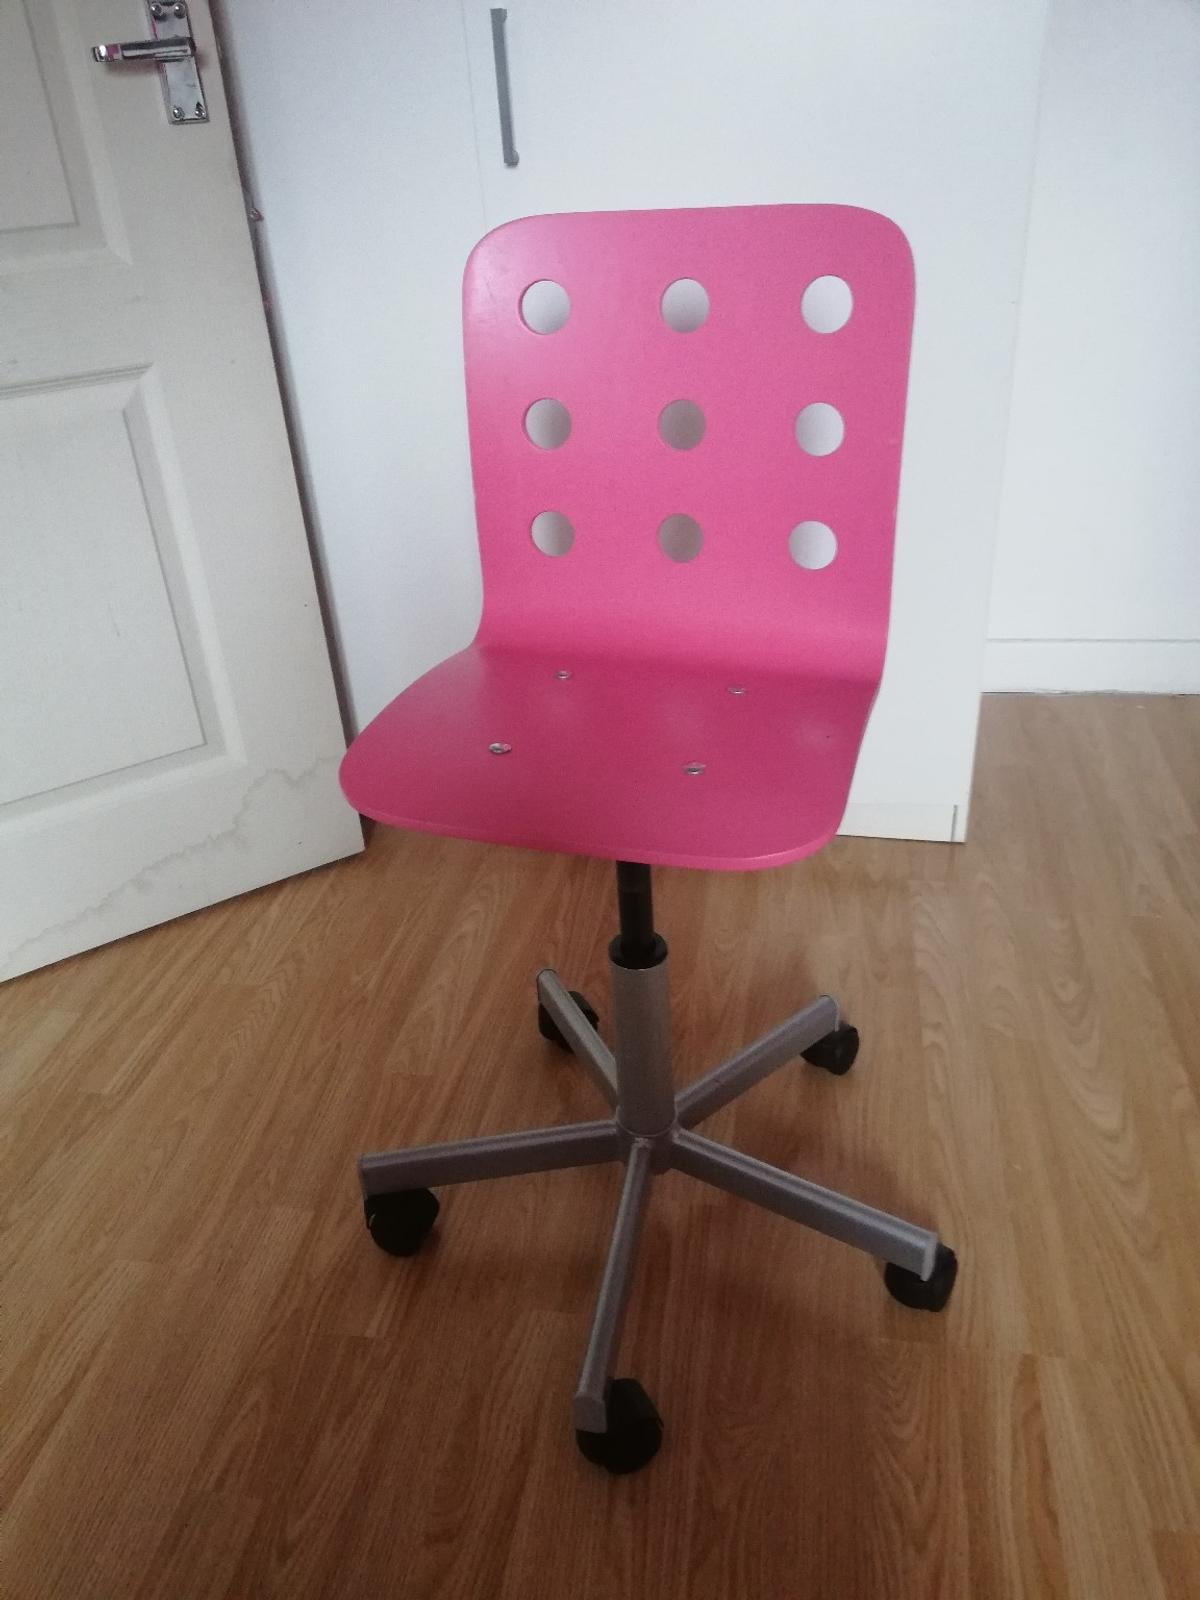 Ikea Childrens Furniture Set In Wa9 Helens For 50 00 For Sale Shpock